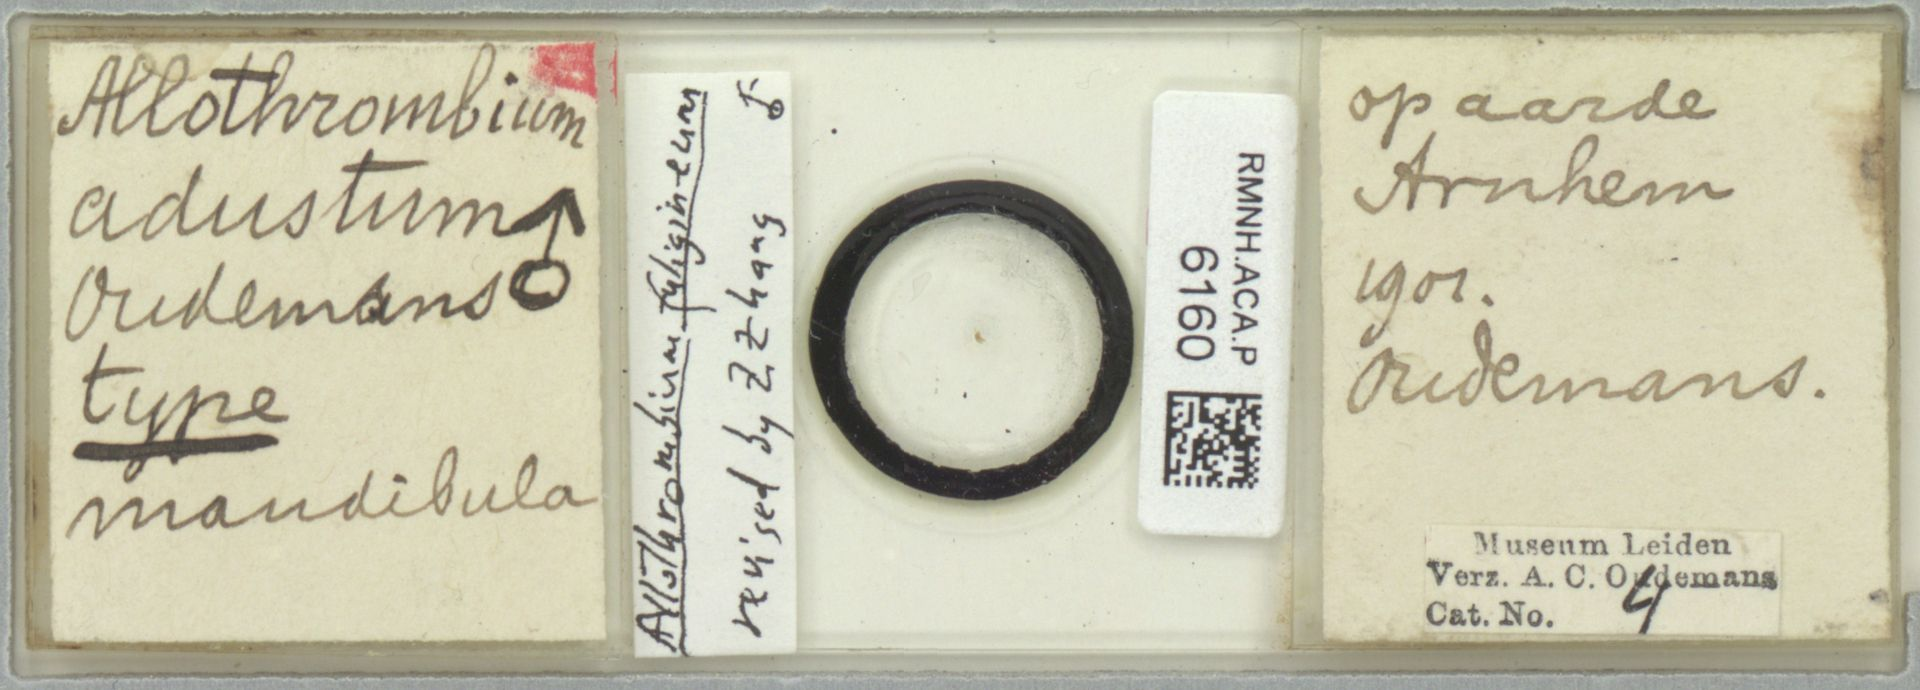 RMNH.ACA.P.6160 | Allothrombium fuligineum